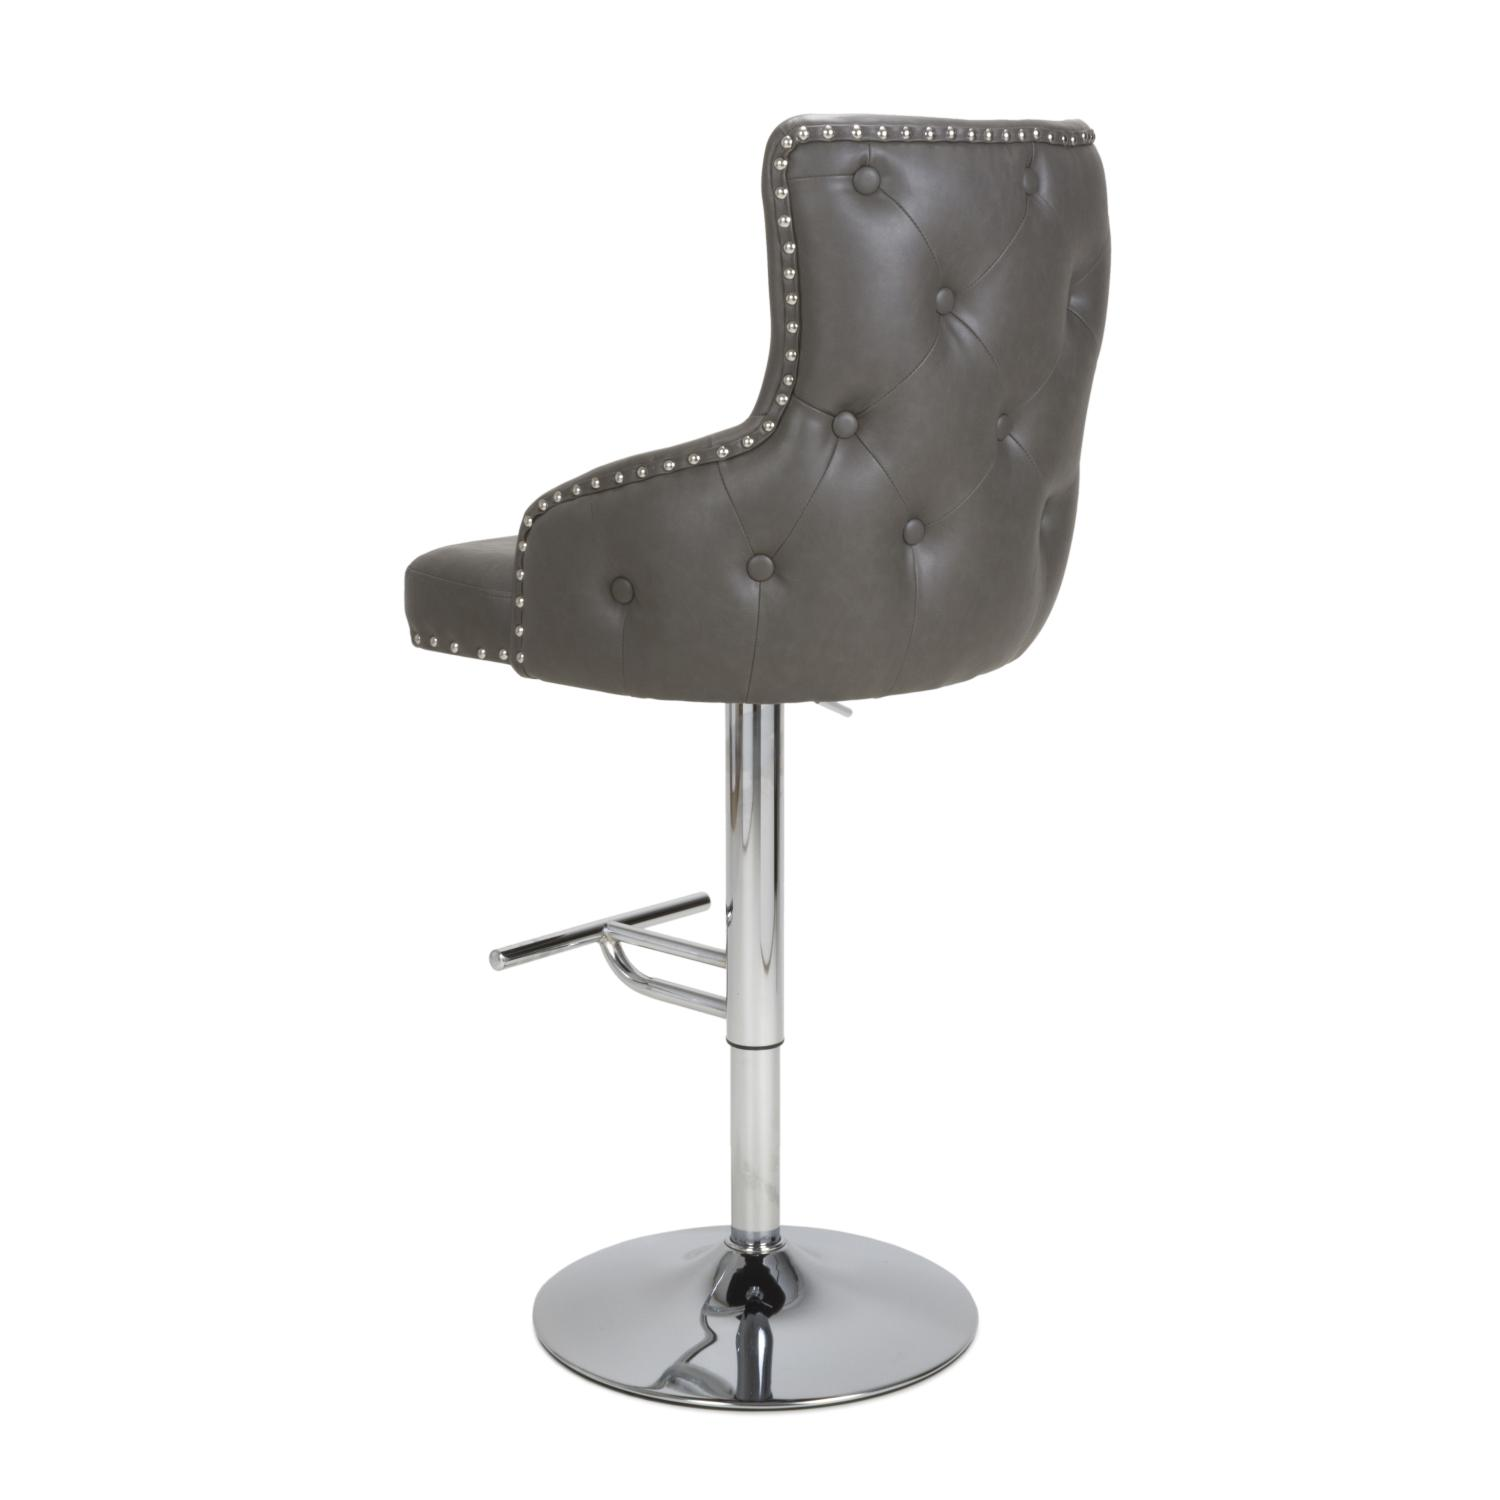 Cairo Vintage Grey Leather Bar Stool